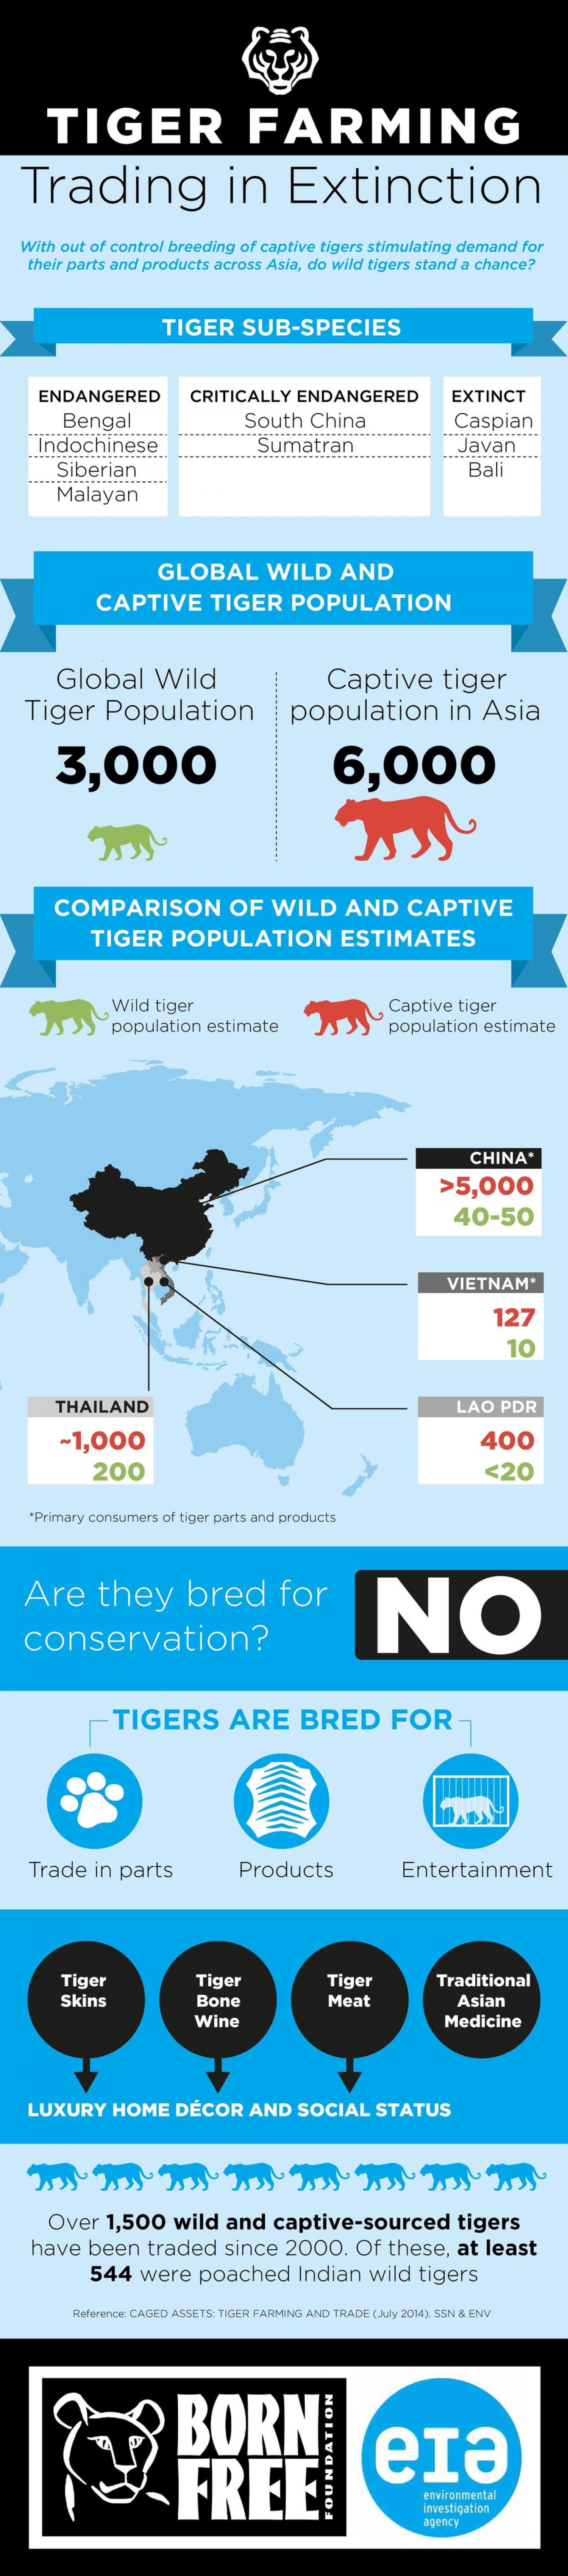 Tiger Farming: Trading in Extinction Infographic